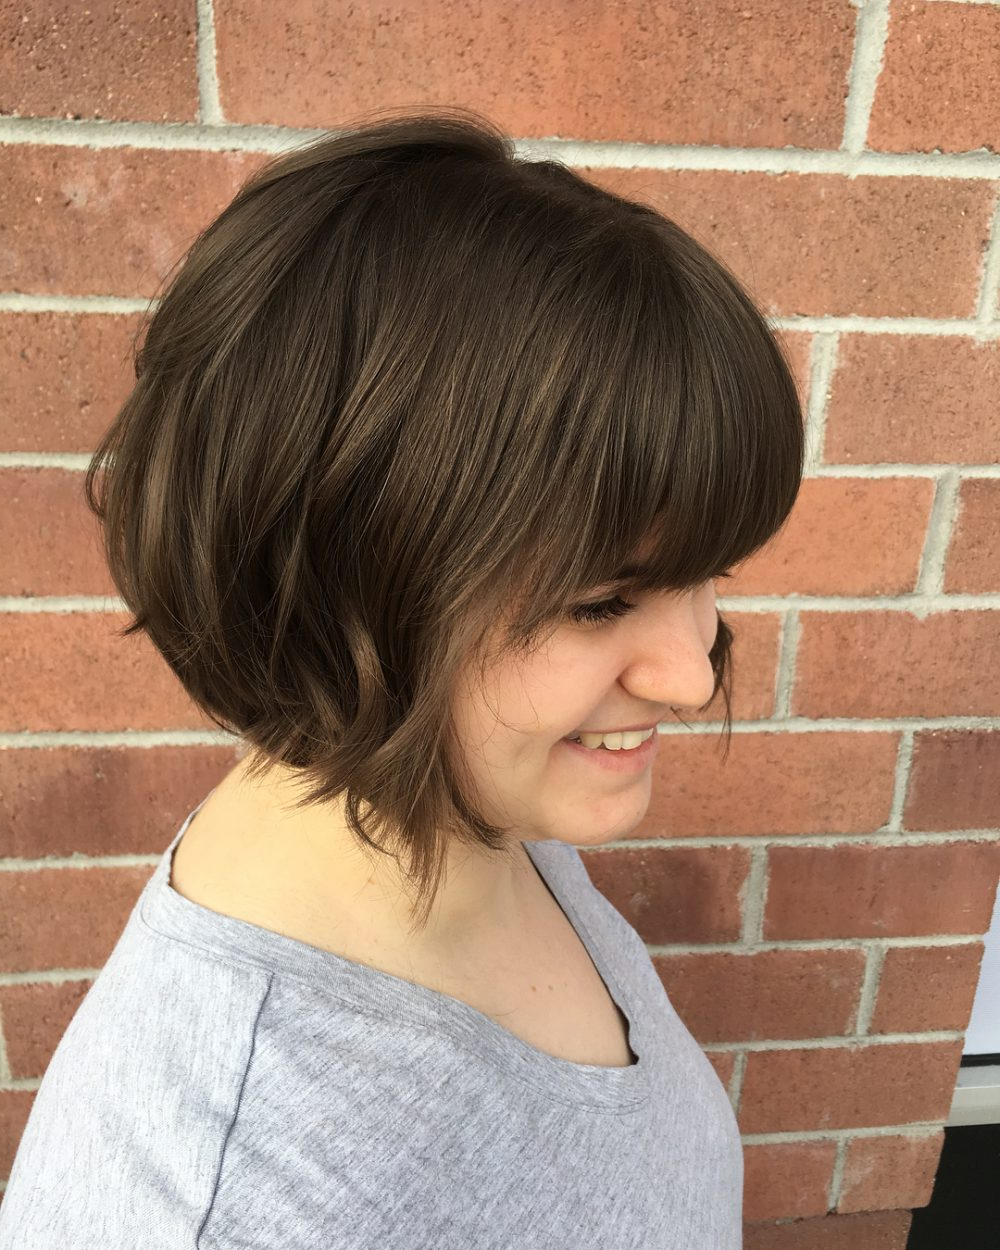 34 Greatest Short Haircuts And Hairstyles For Thick Hair For 2018 With Regard To Short Haircuts With Long Side Bangs (View 20 of 25)